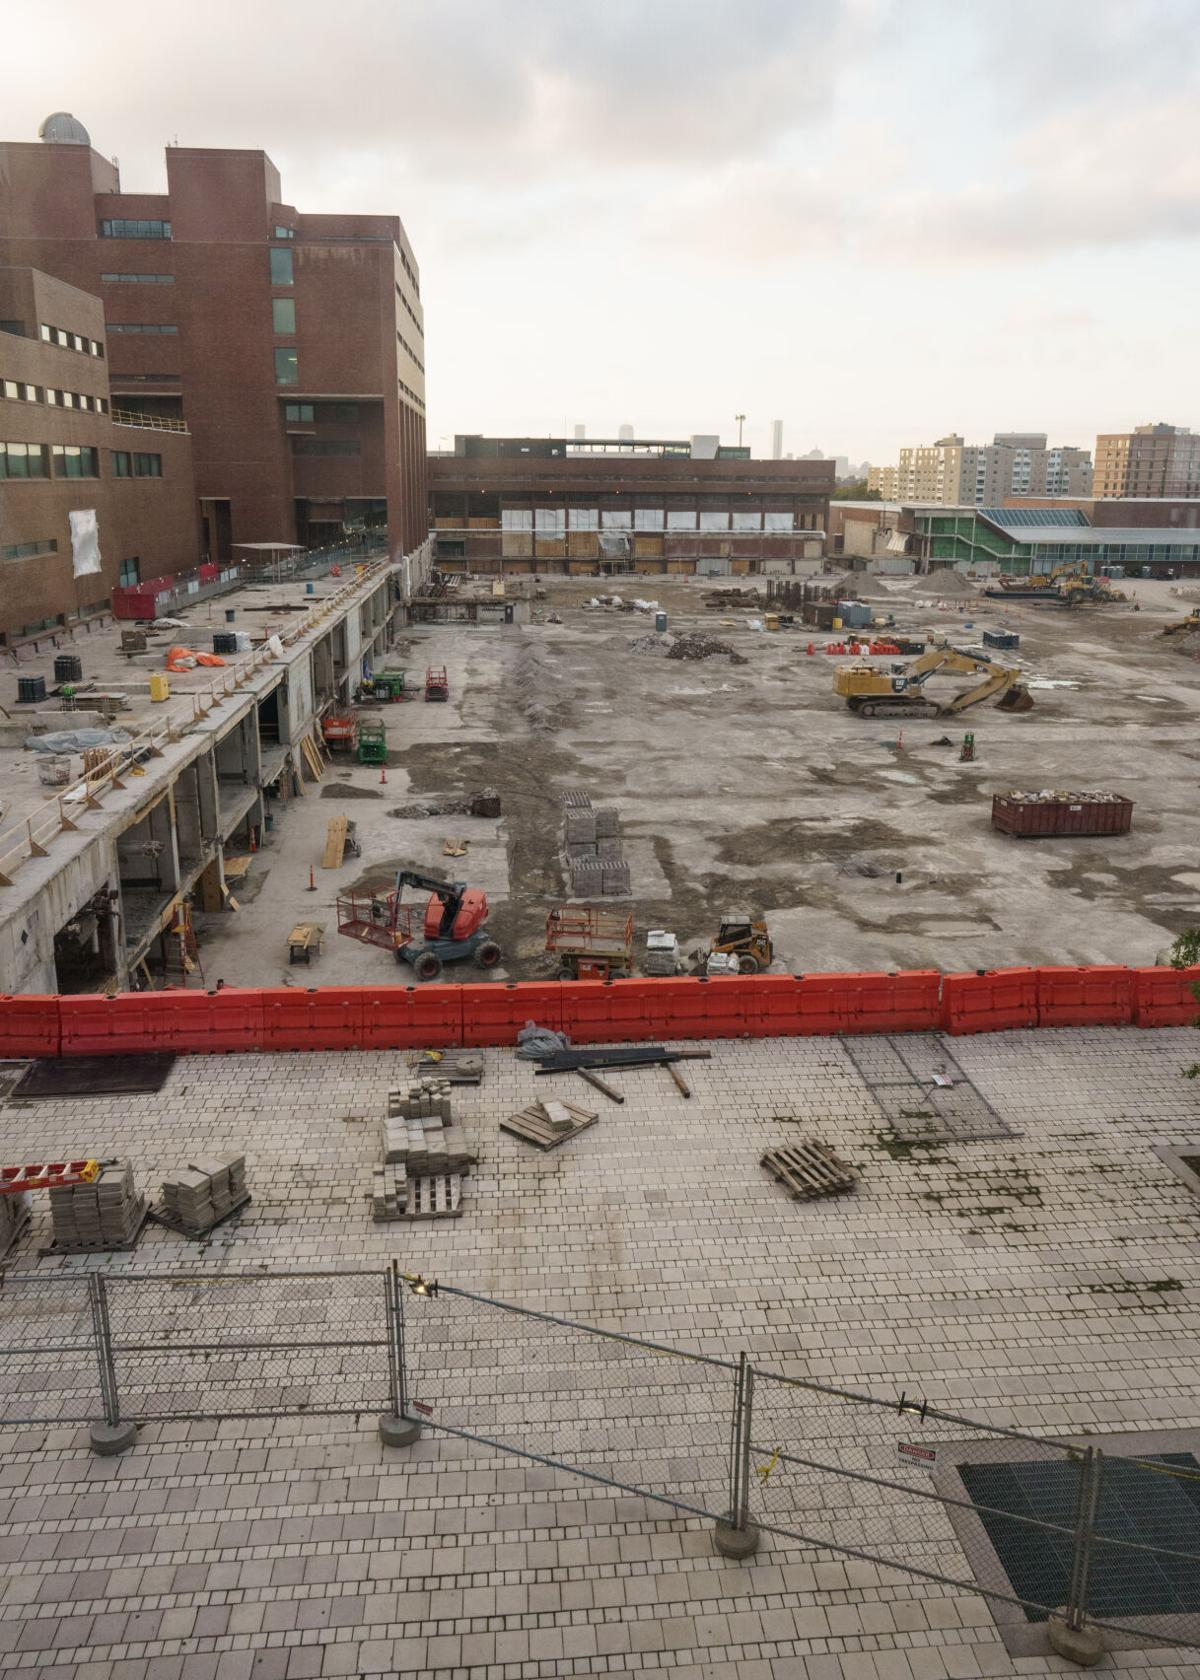 Update on campus construction (1 of 2)